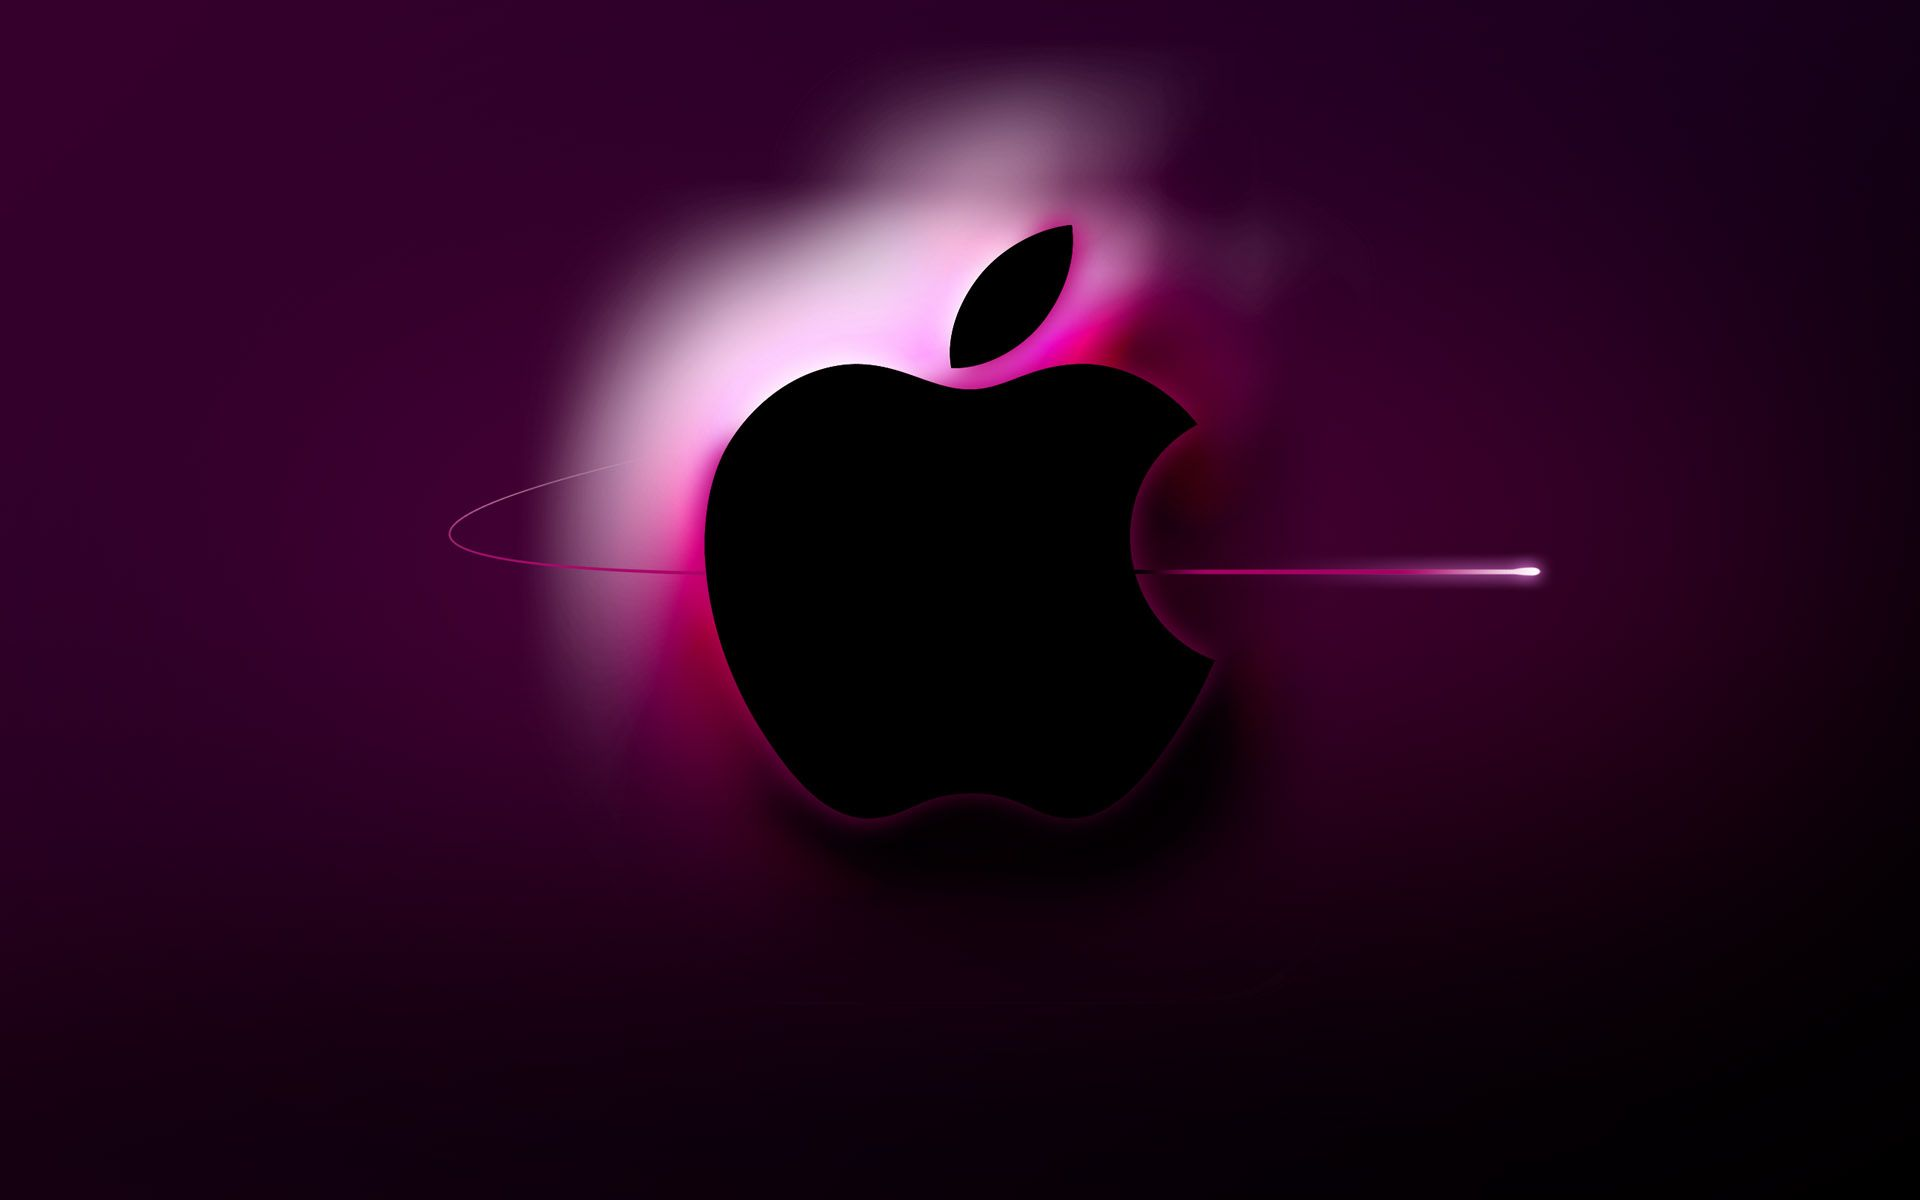 the iphone and ipad maker apple has lost about 40 billion dollars in value on monday on the stock exchange for no apparent reason pinterest wallpaper